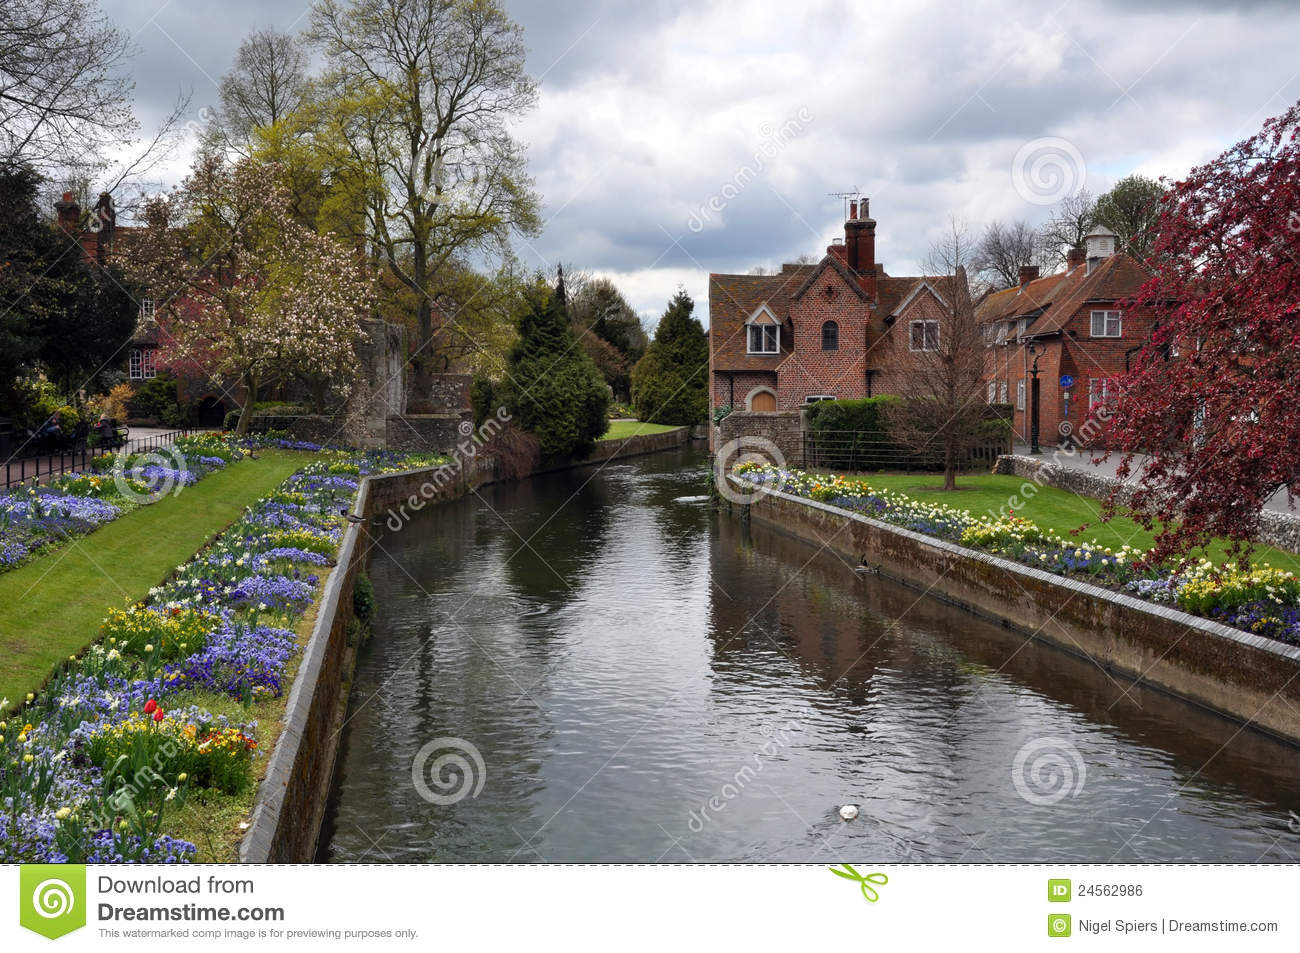 Canterbury United Kingdom  city pictures gallery : Canterbury, United Kingdom River & Gardens Royalty Free Stock Image ...